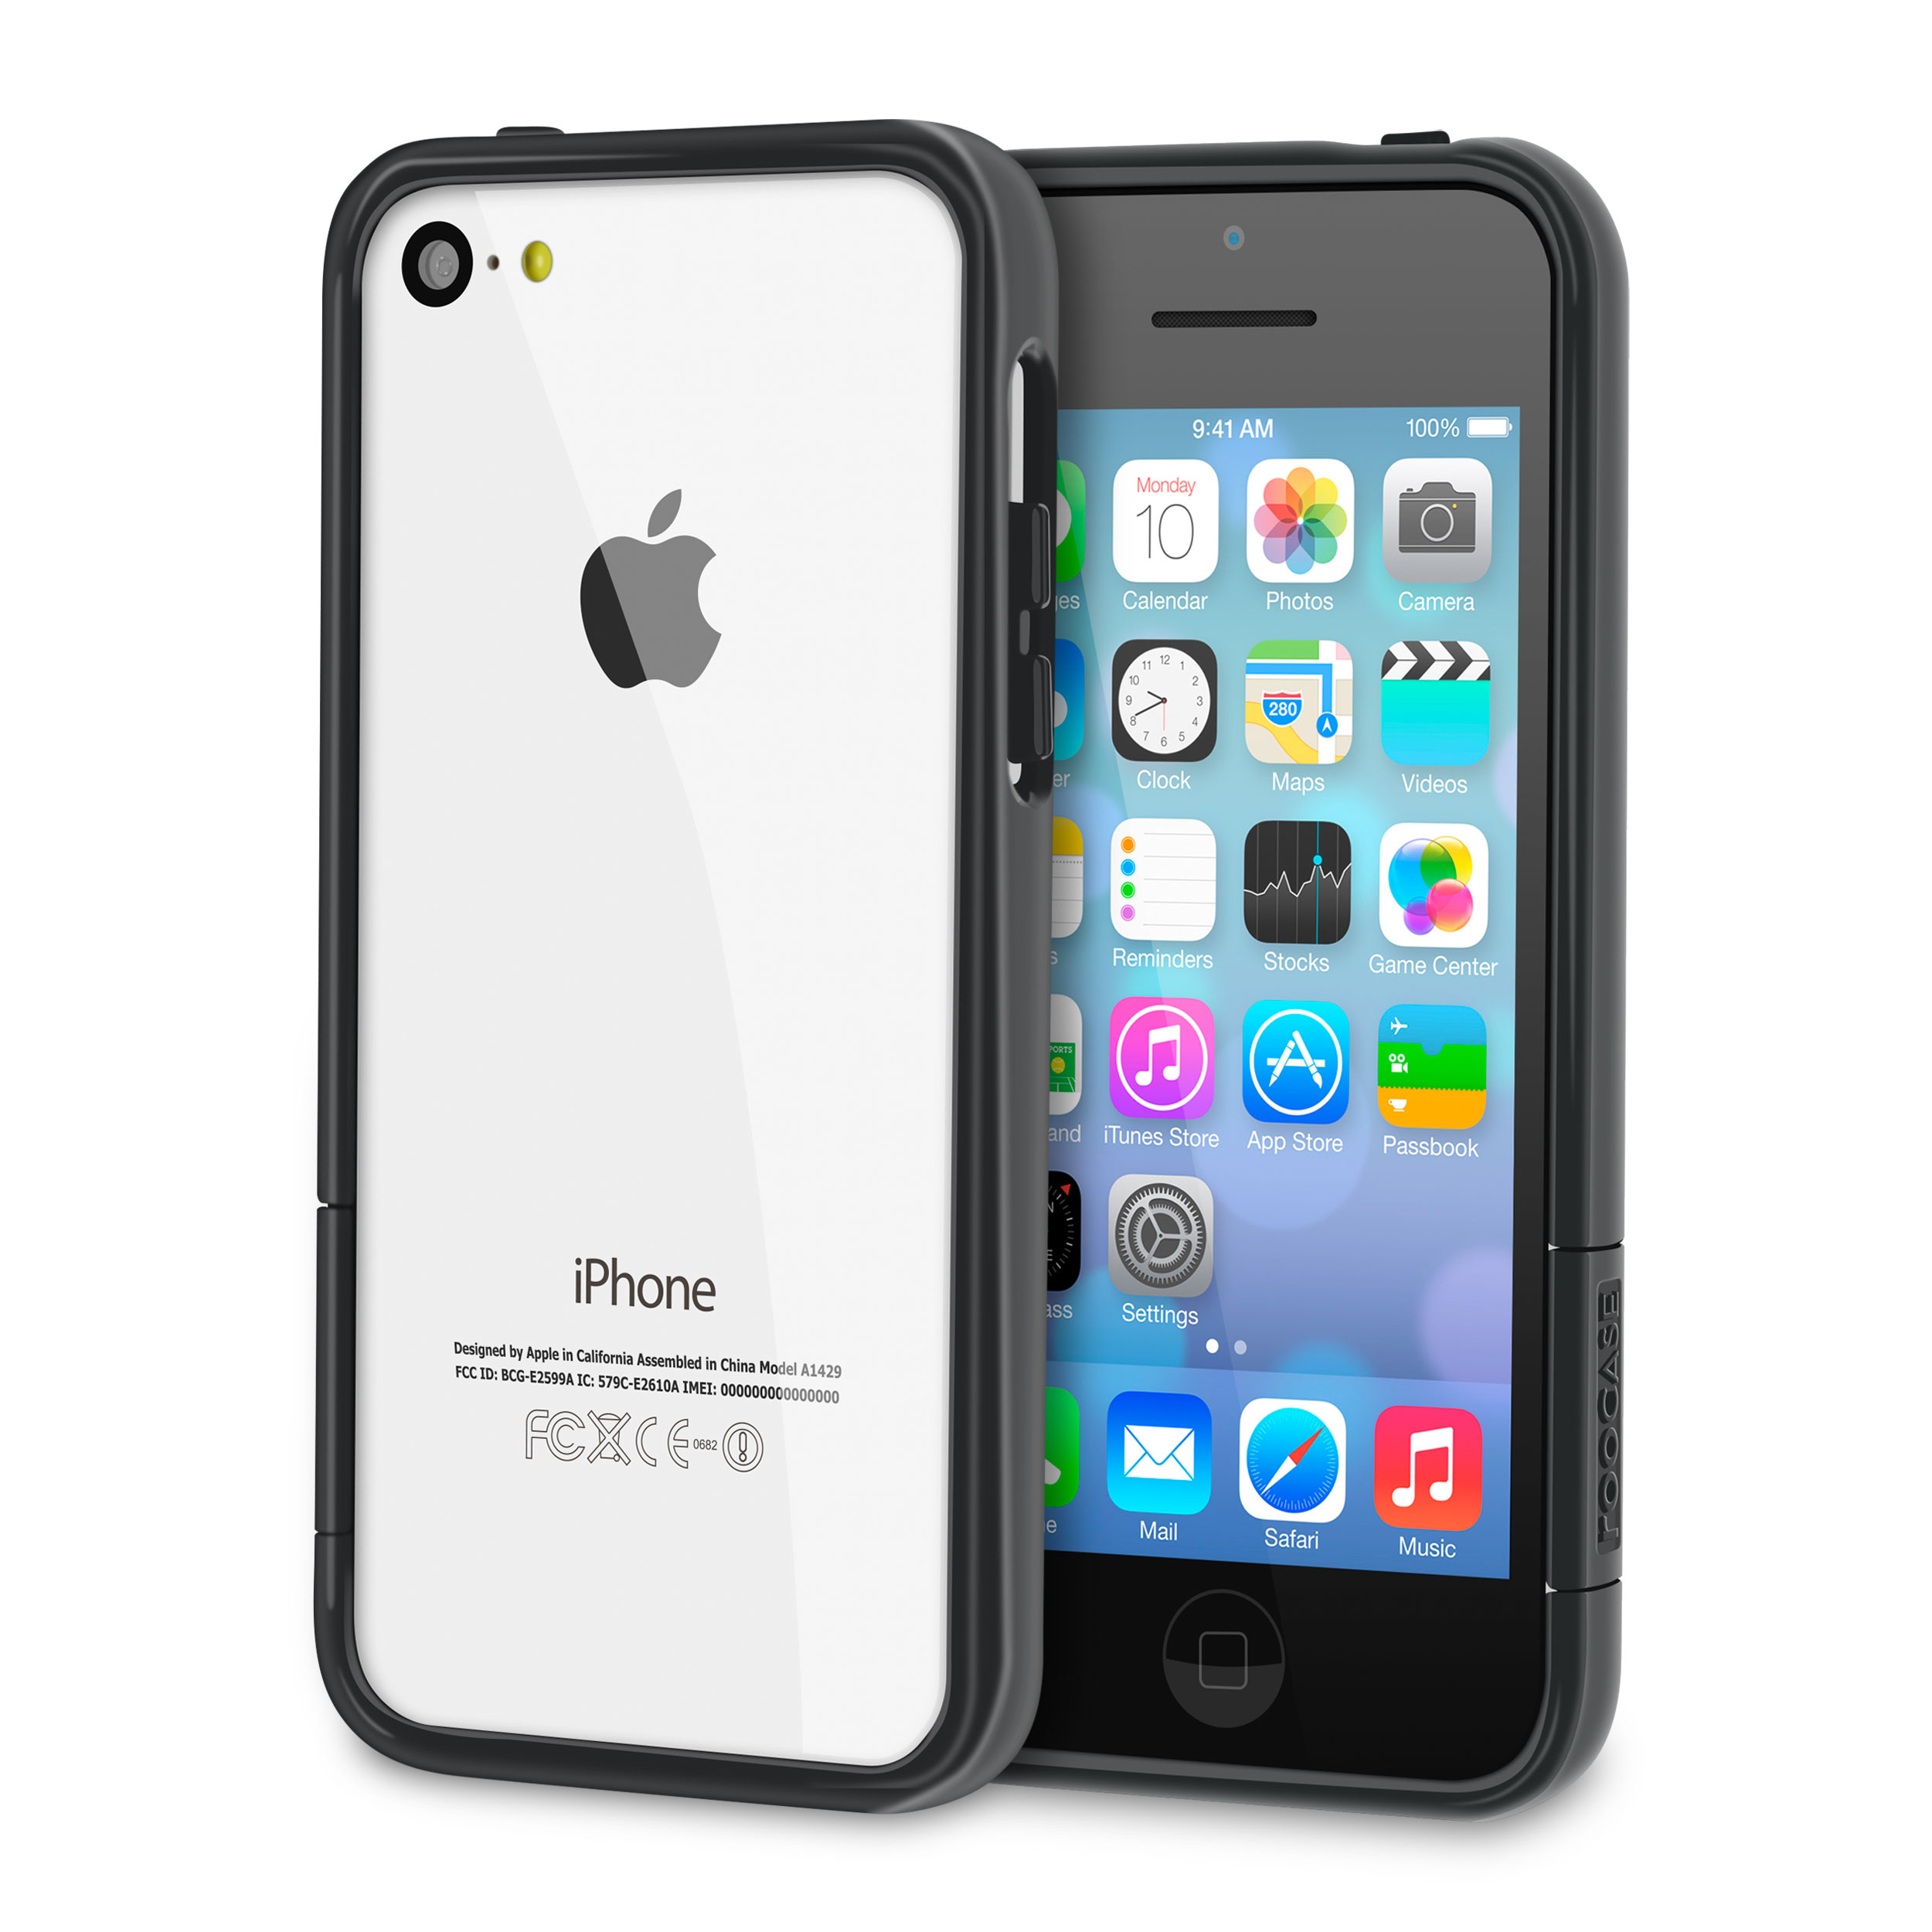 rooCASE Apple iPhone 5C ProGuard Bumper Slim Shell Case, Gloss Black